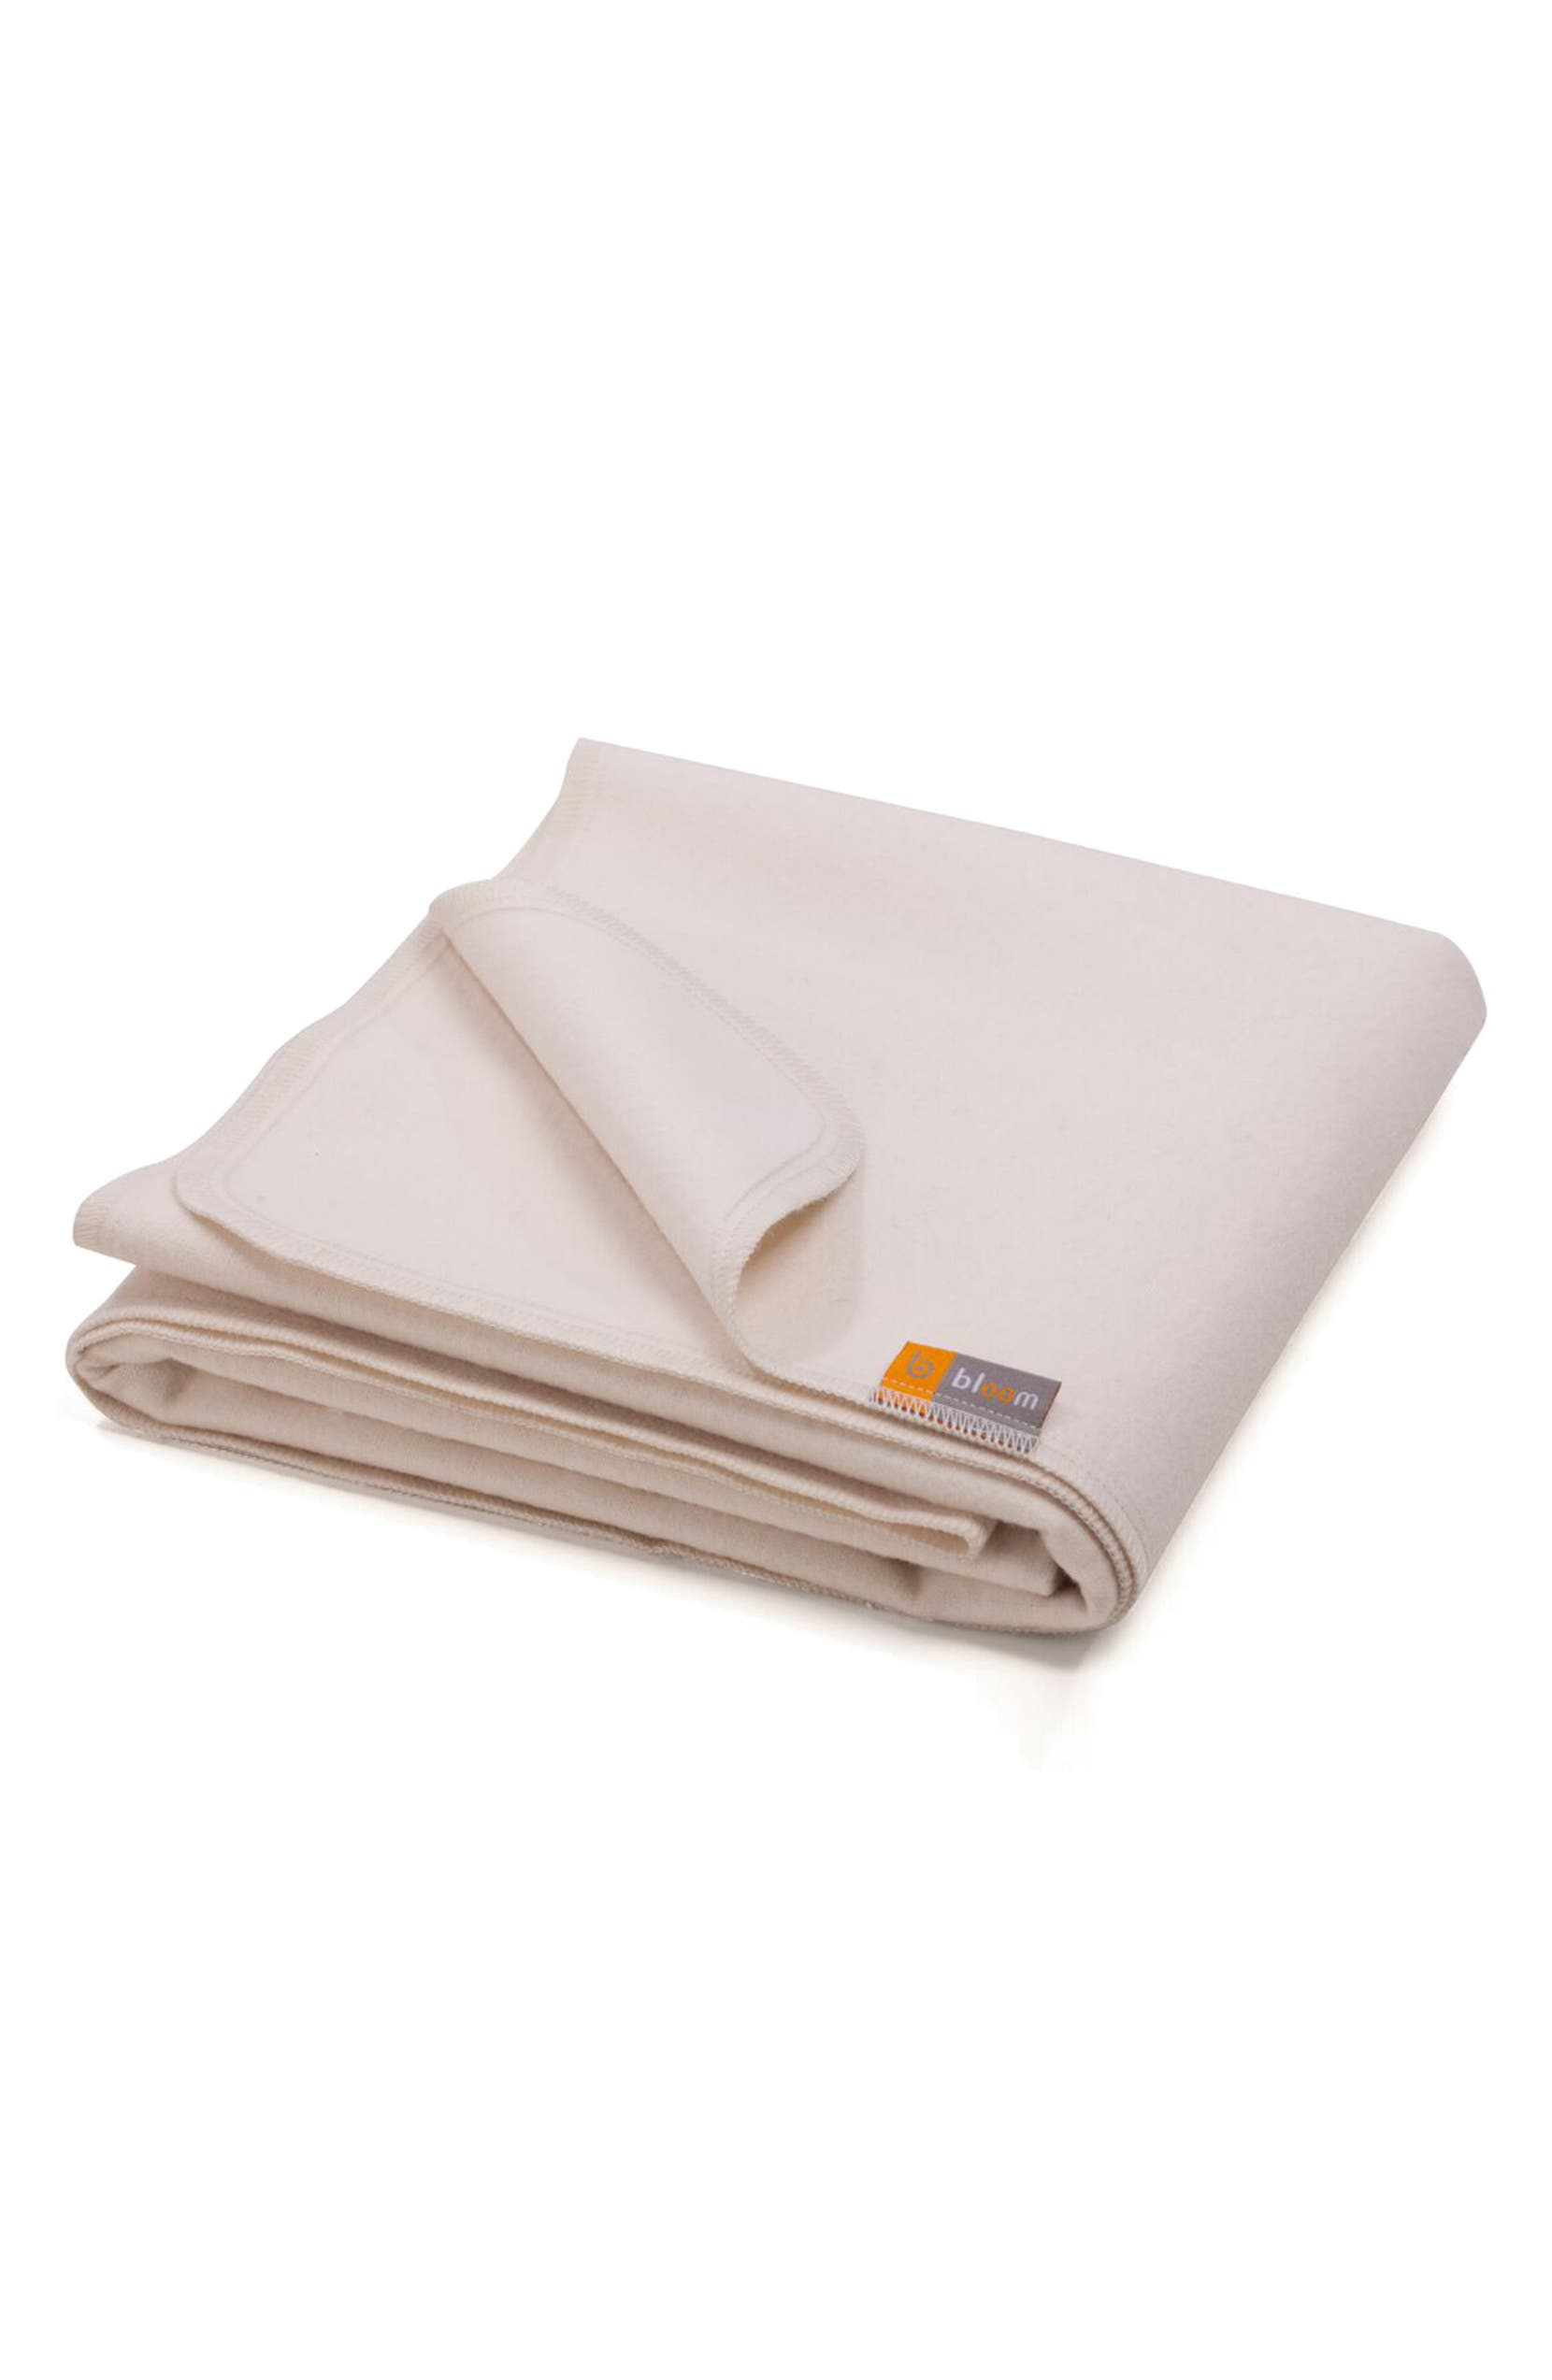 bloom baby mattress protector pad for alma mini crib | nordstrom